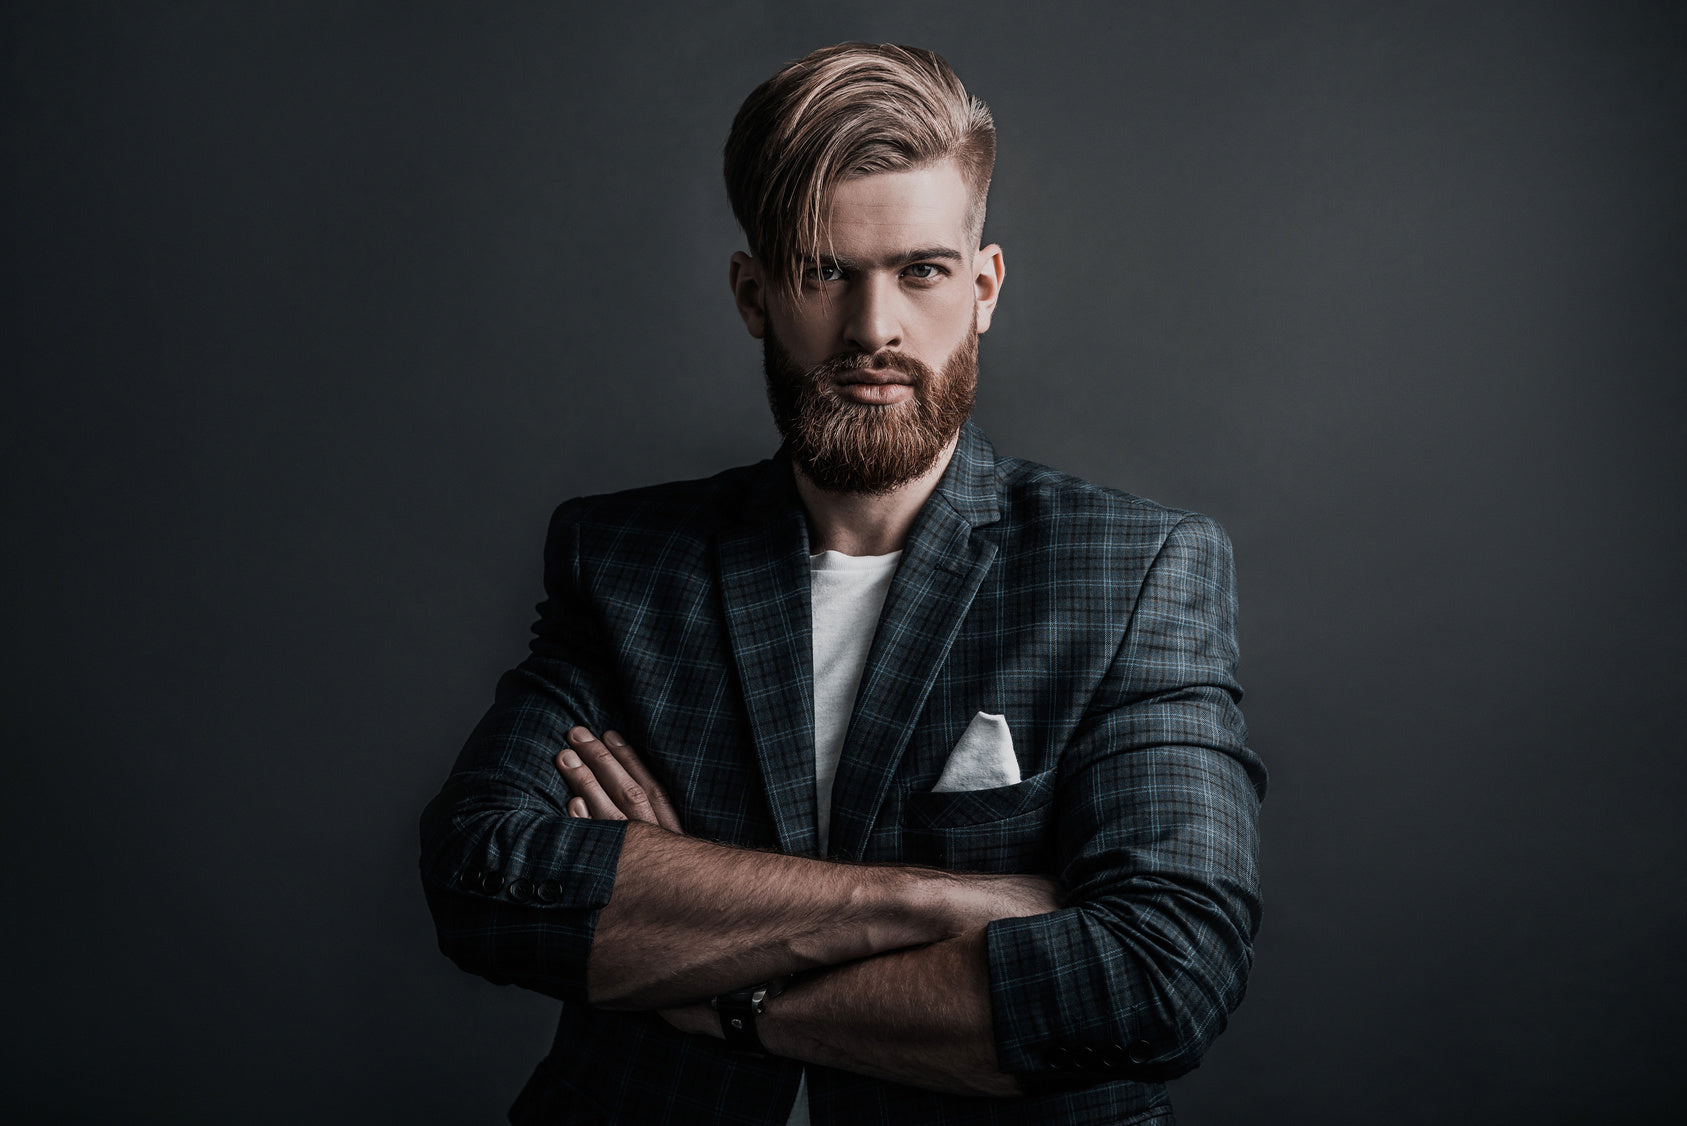 Amazing Top 10 Amazing Benefits Of Beard Oil (And Everything Else You Need To Know)